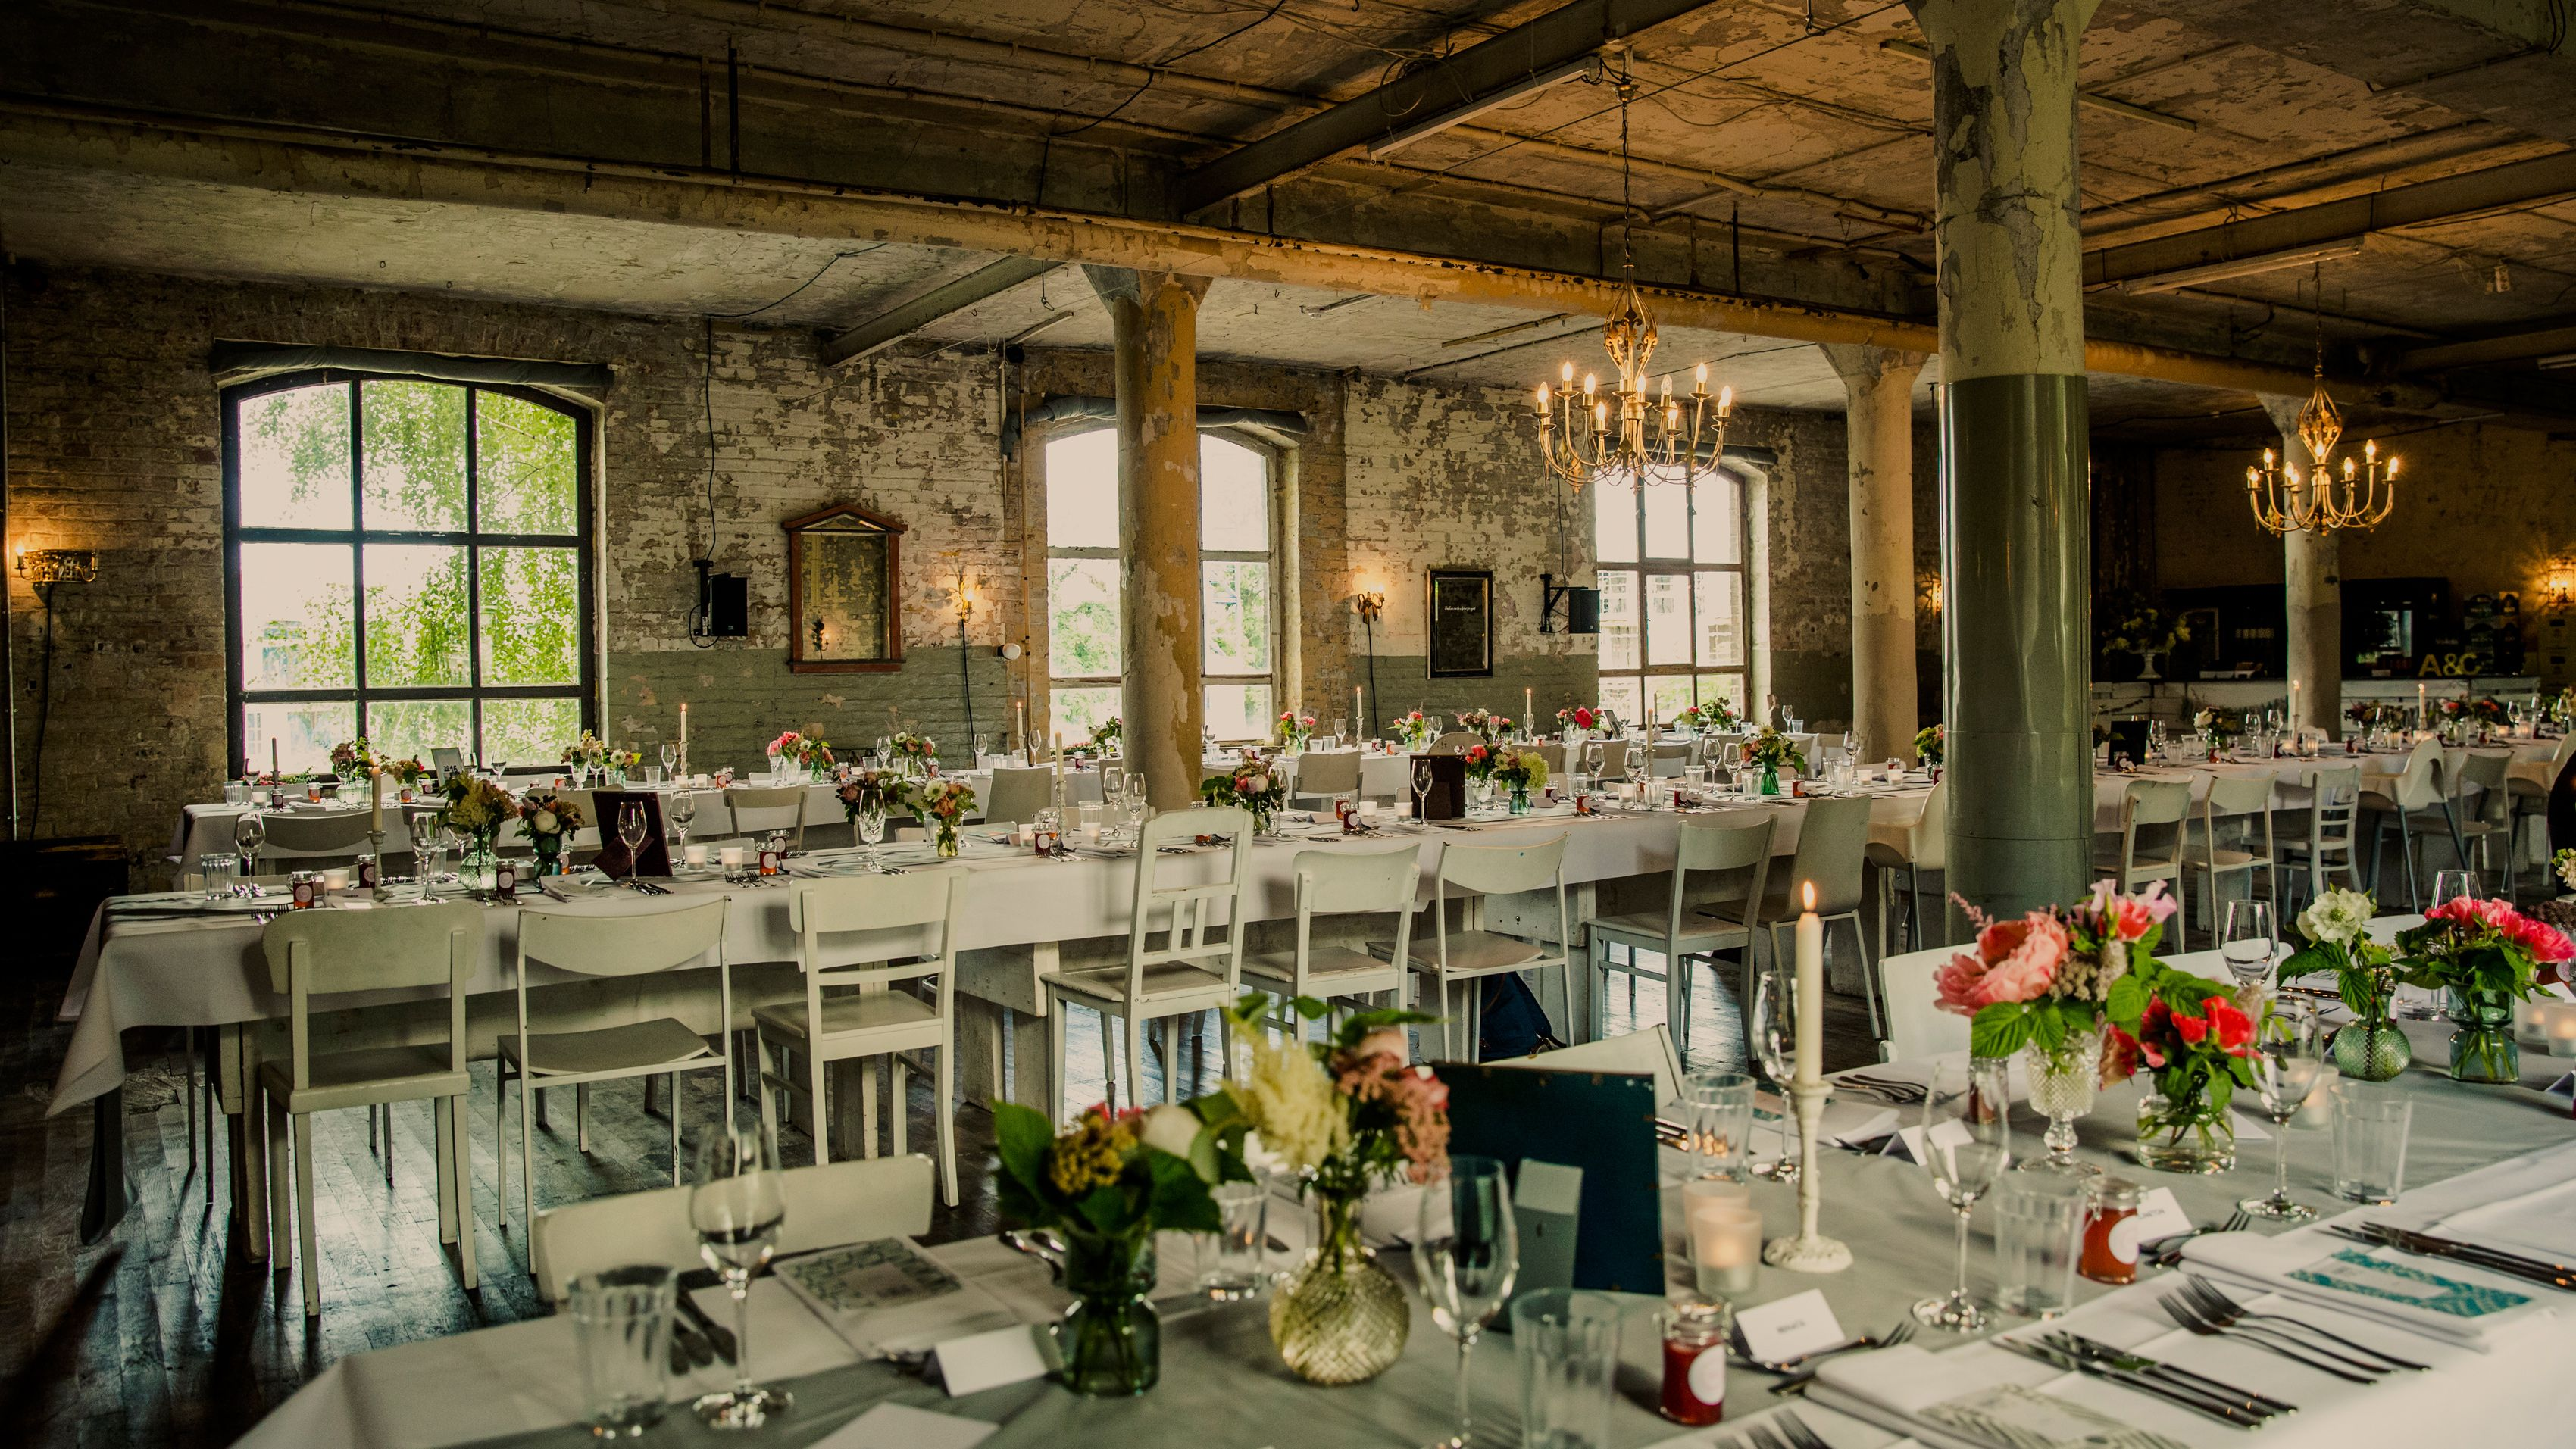 hochzeitslocation loft fabrik wedding location fabric shabby chic berlin foto cameramirage. Black Bedroom Furniture Sets. Home Design Ideas